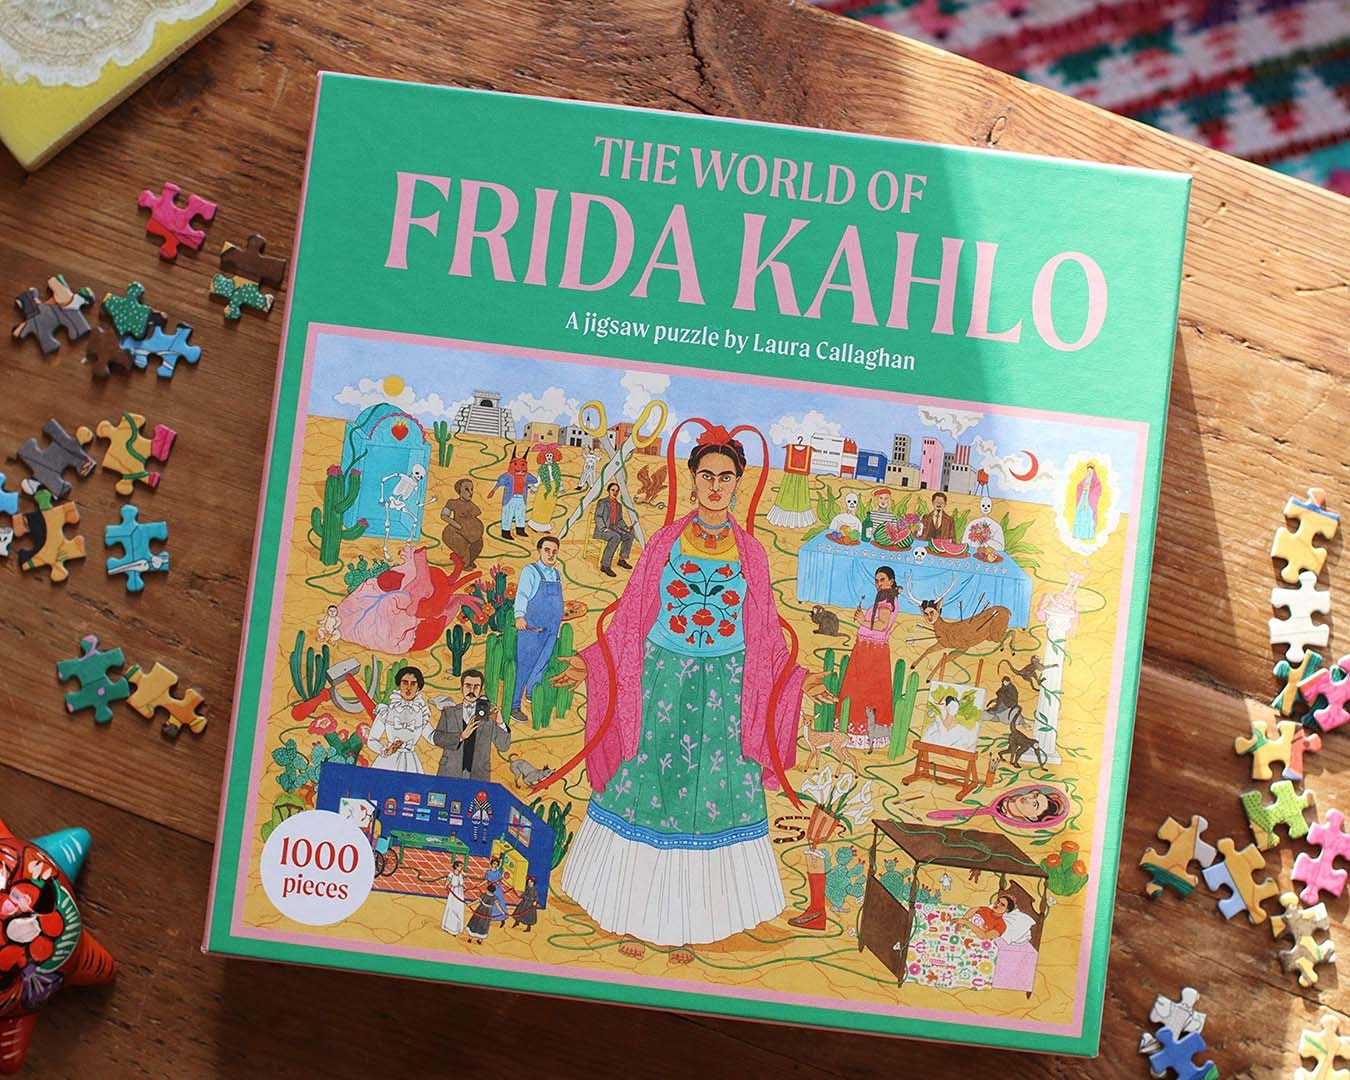 A puzzle box, featuring an illustration of Frida Kahlo, sits on wooden table with a few pieces scattered around.